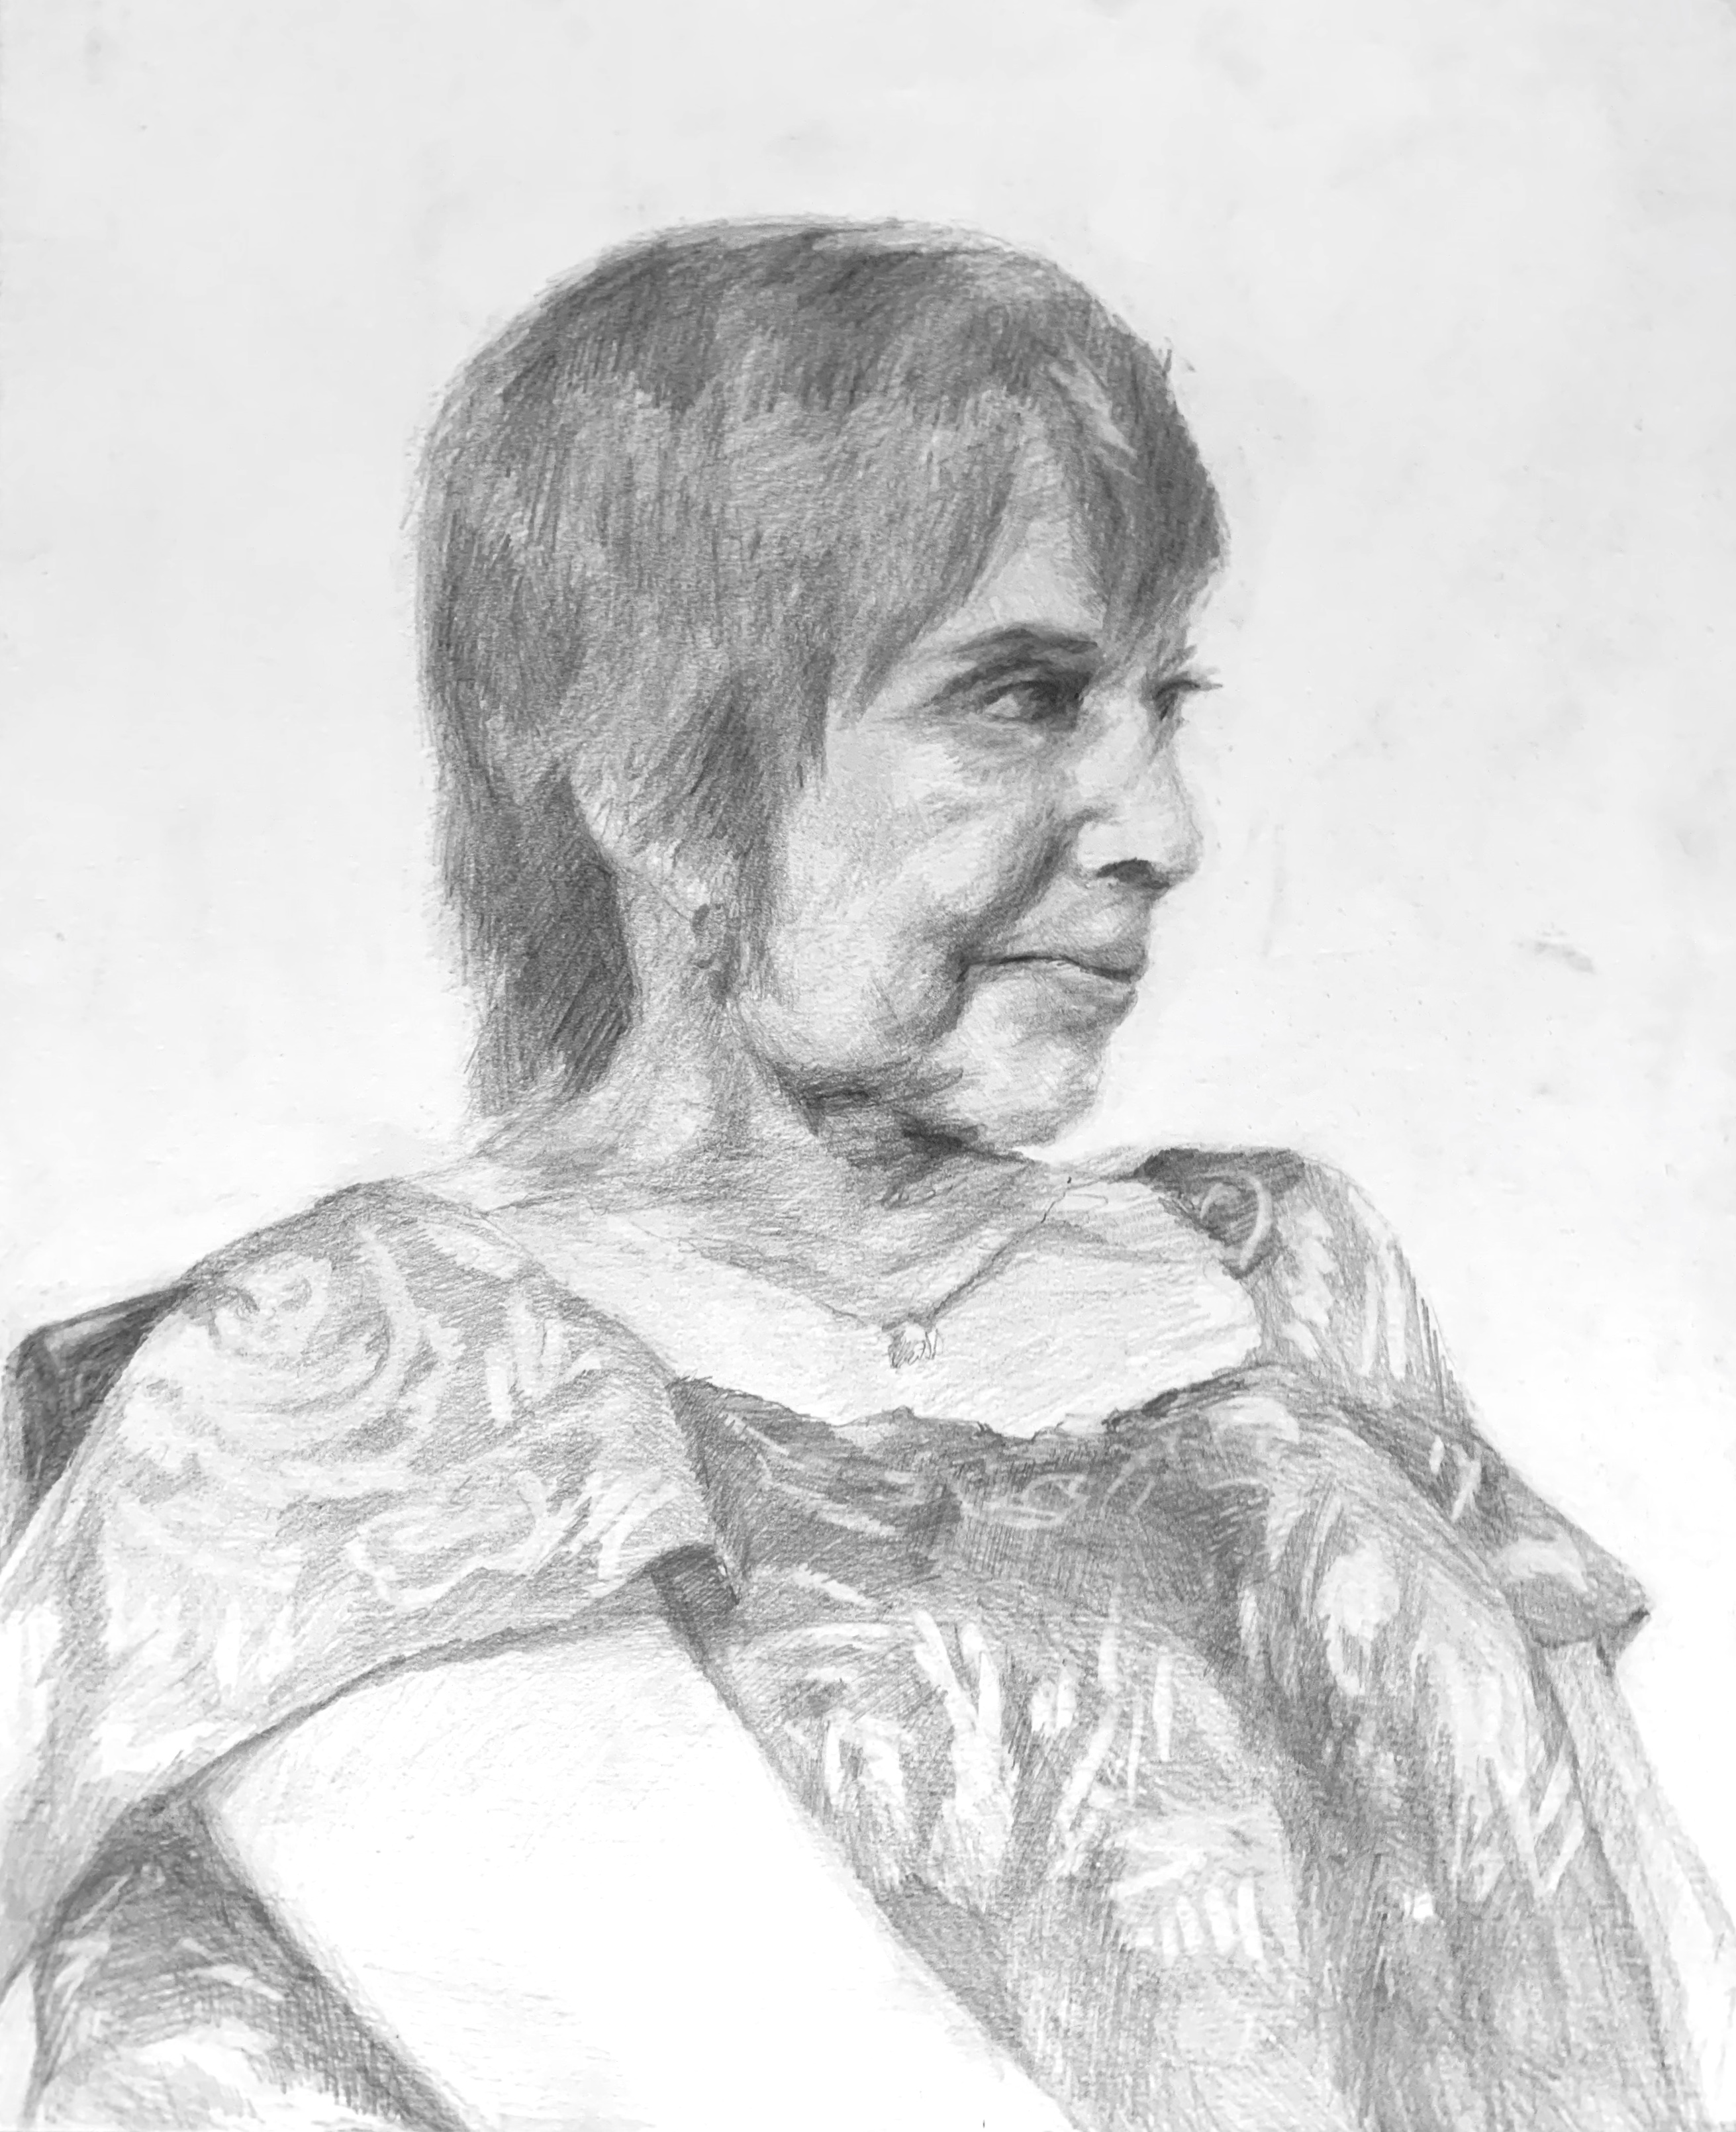 Study of Joan (from life), Graphite on Paper